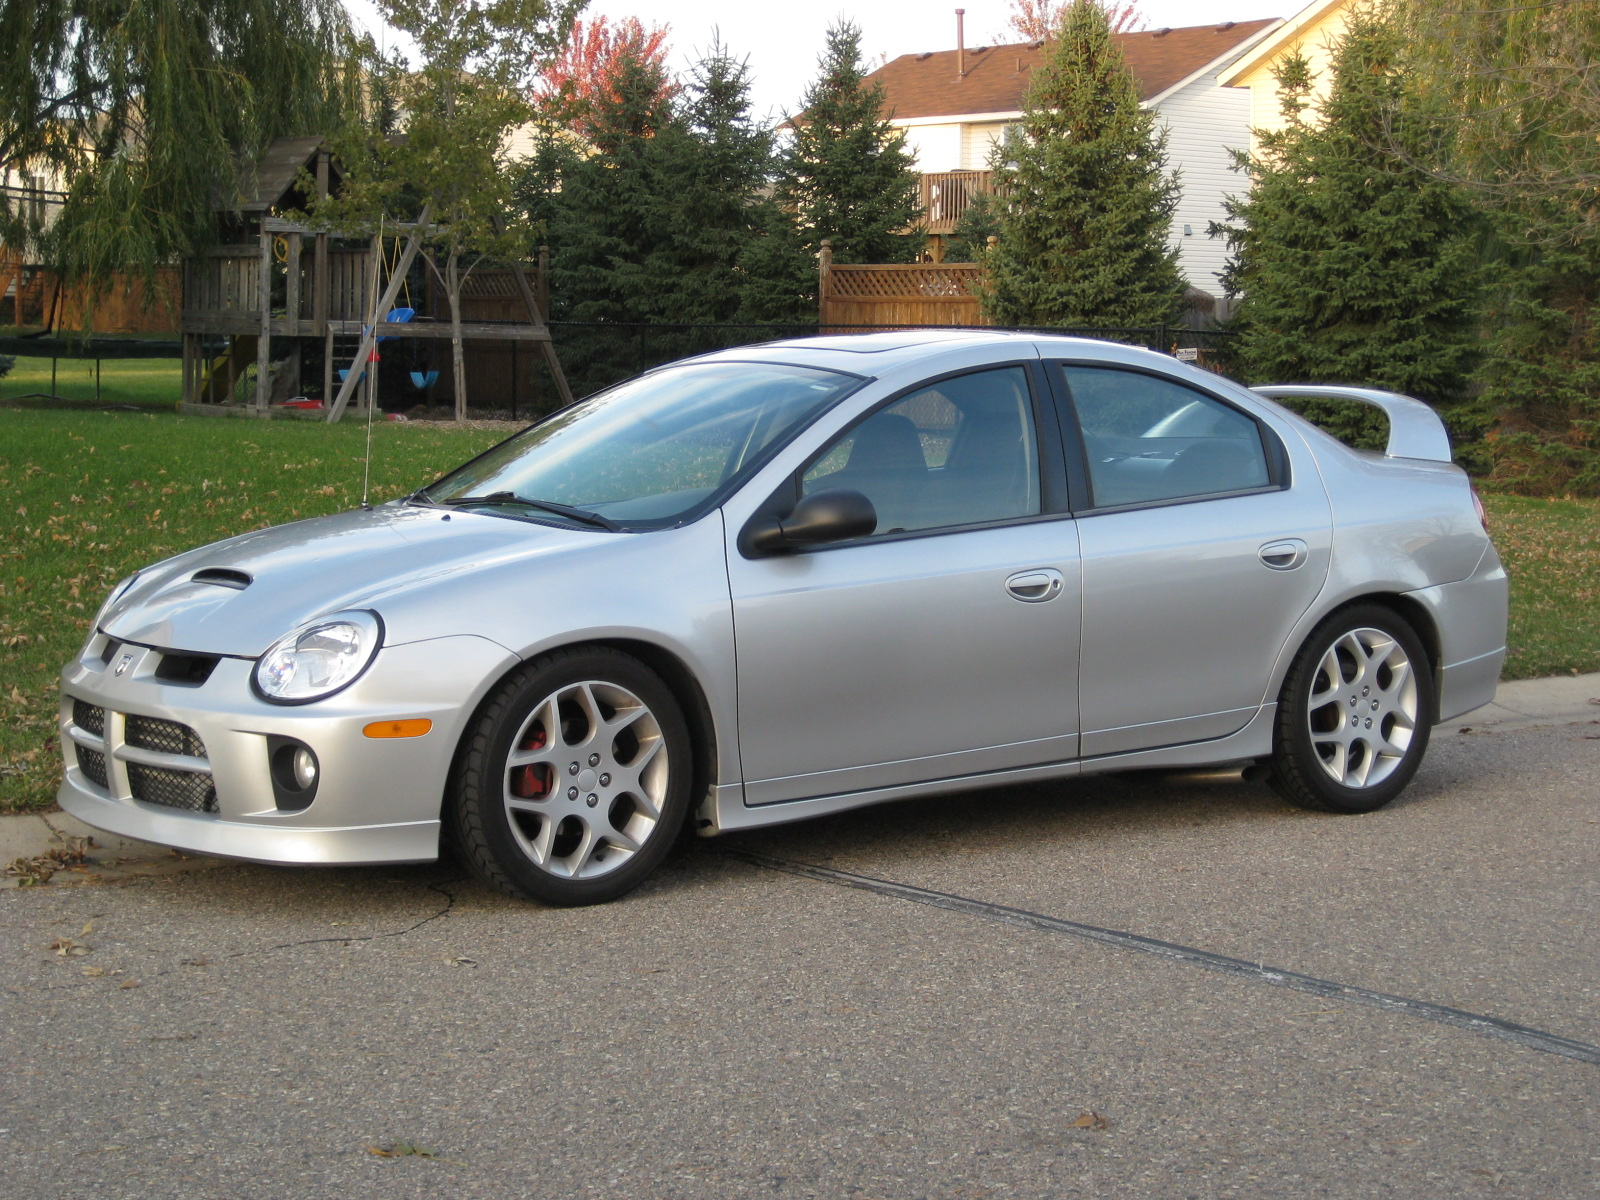 Dodge Neon-SRT-4 for sale